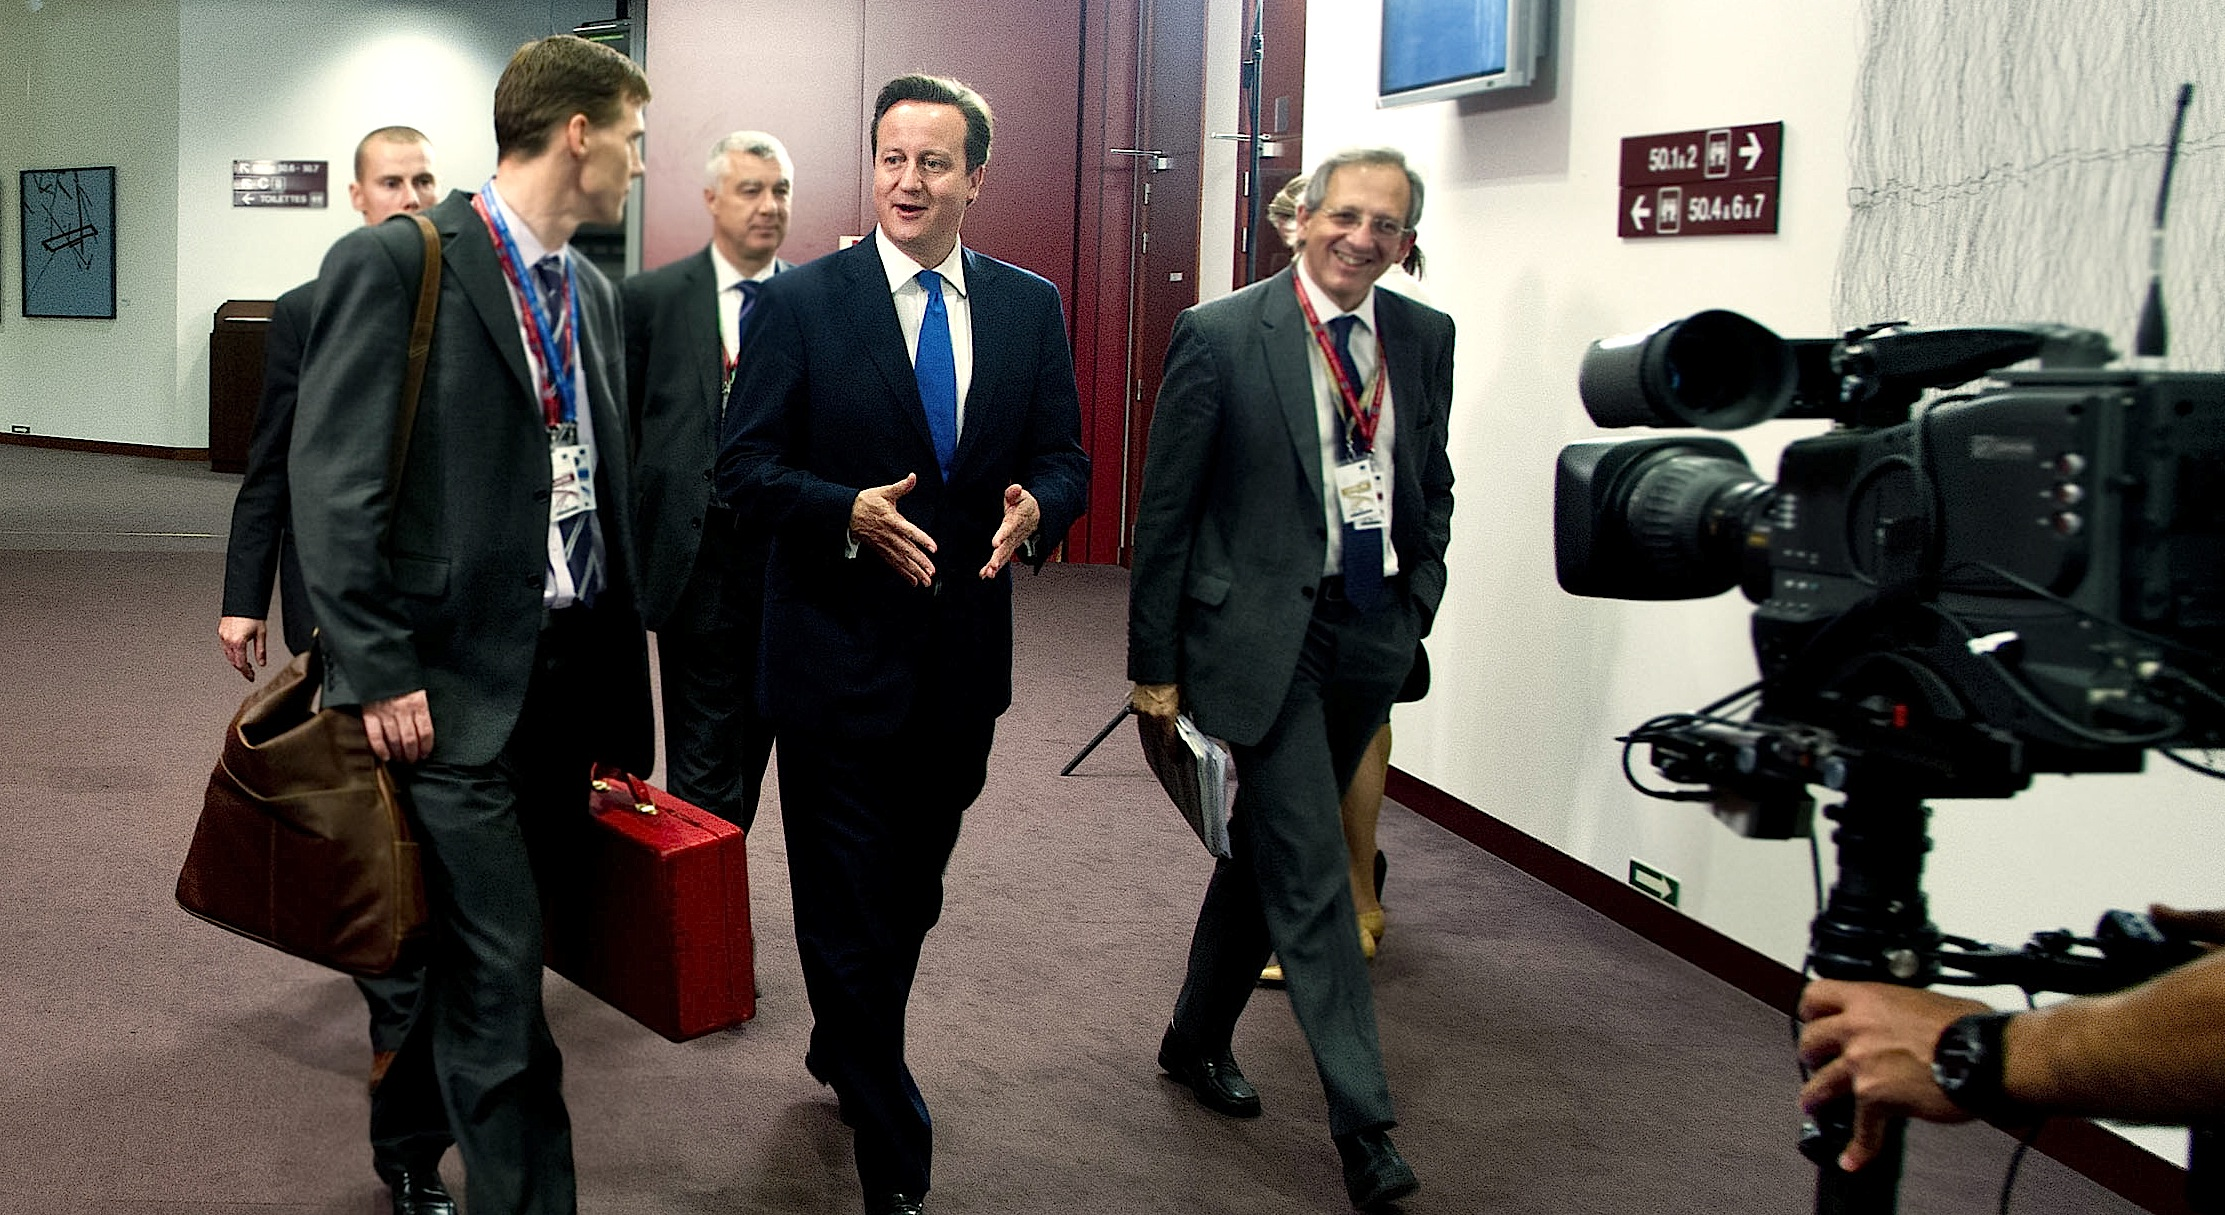 Britain 'perfectly entitled' to demand new EU terms - Cameron